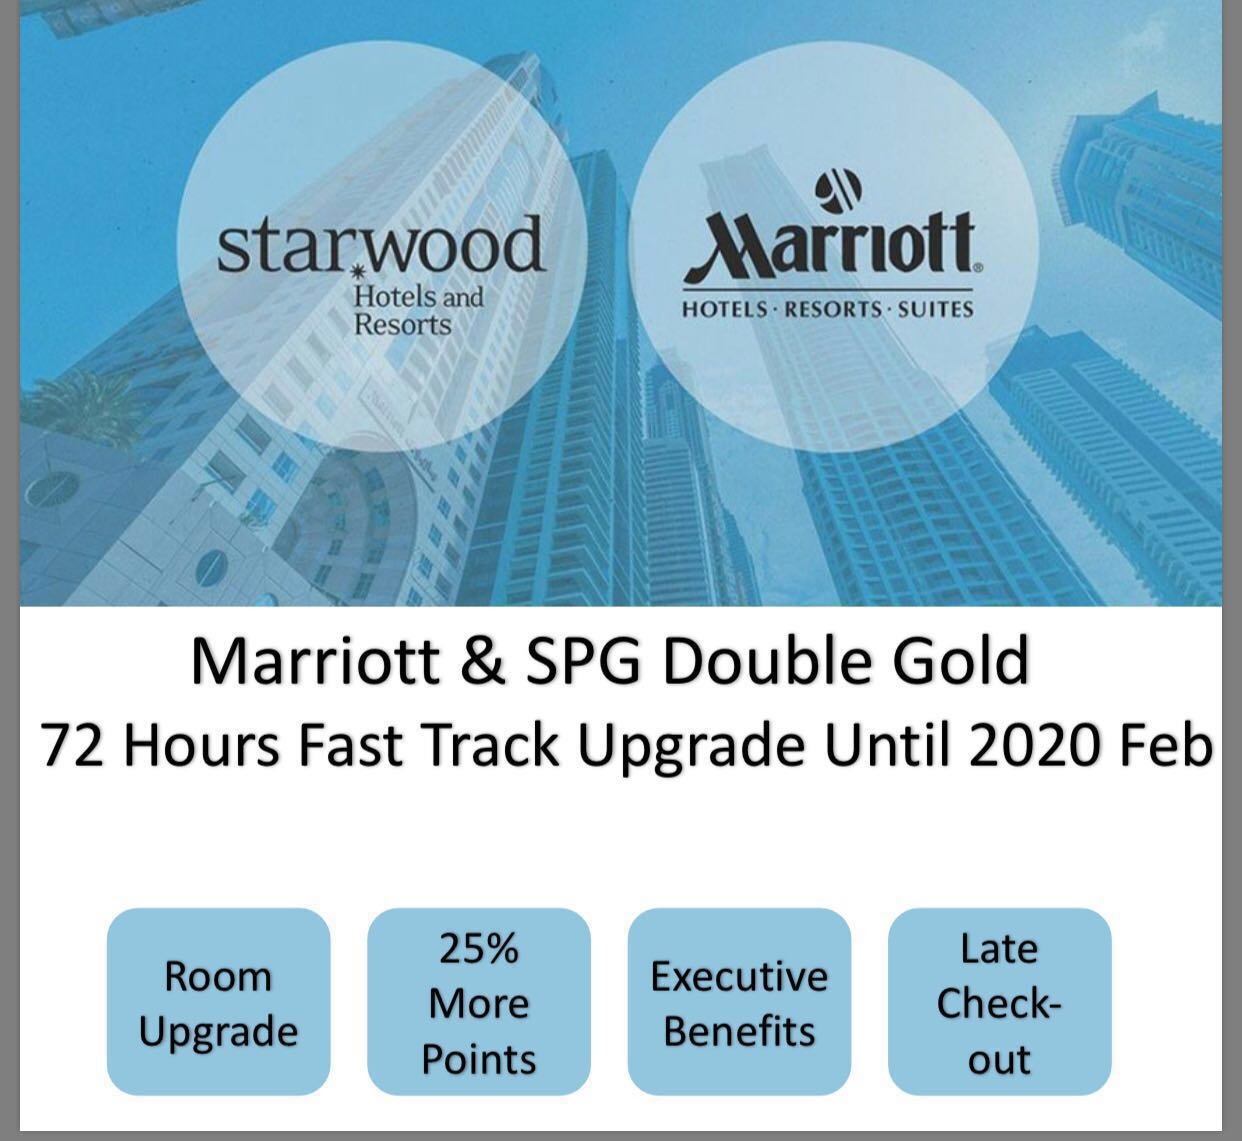 SPG & Mariott Double Gold Elite Status, 72 hours to achieve until 2020 Feb